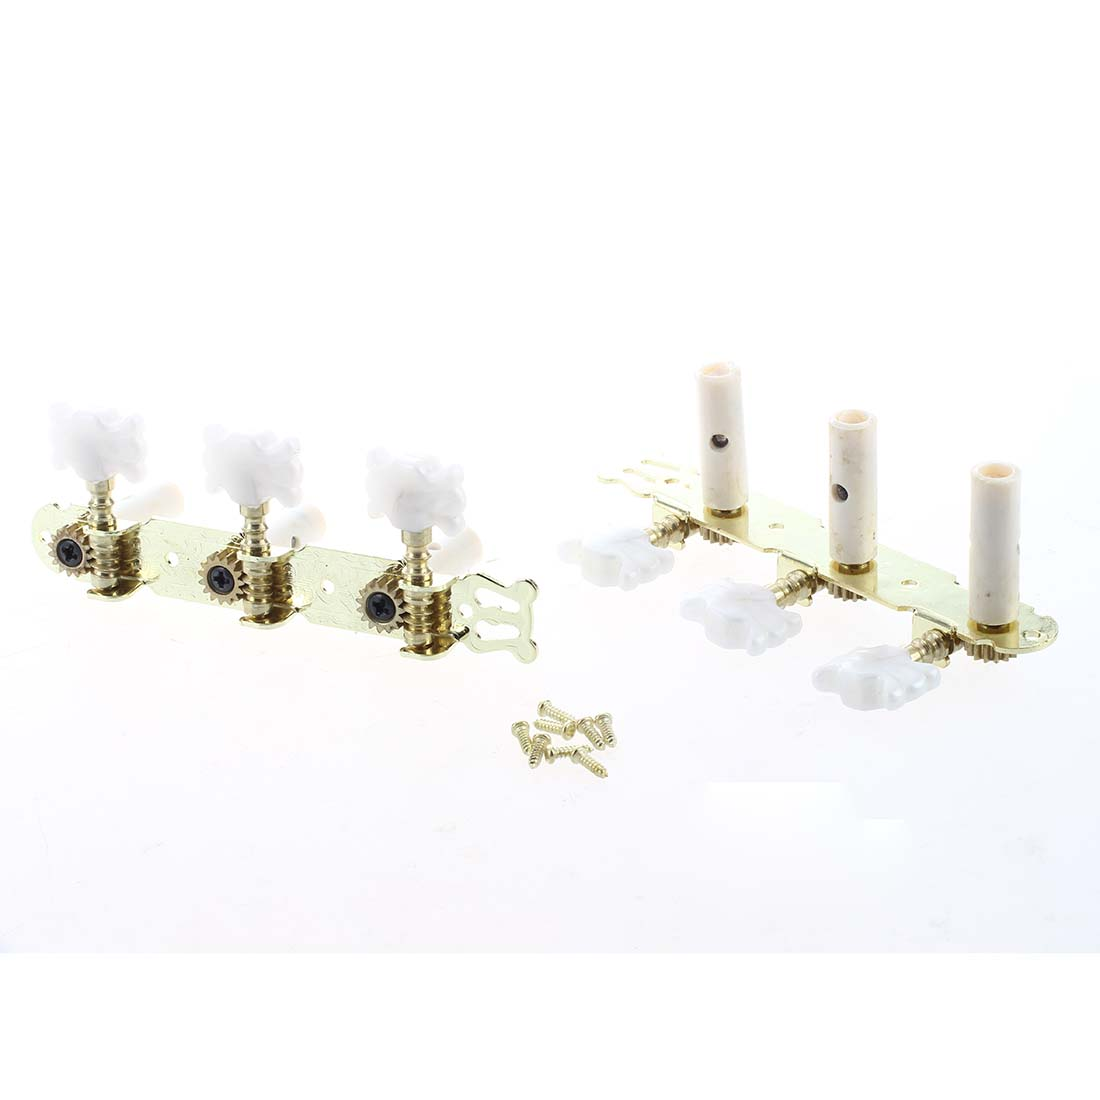 16pcs Classical Guitar Tuning Pegs Keys Machine Heads---Golden Tone<br>